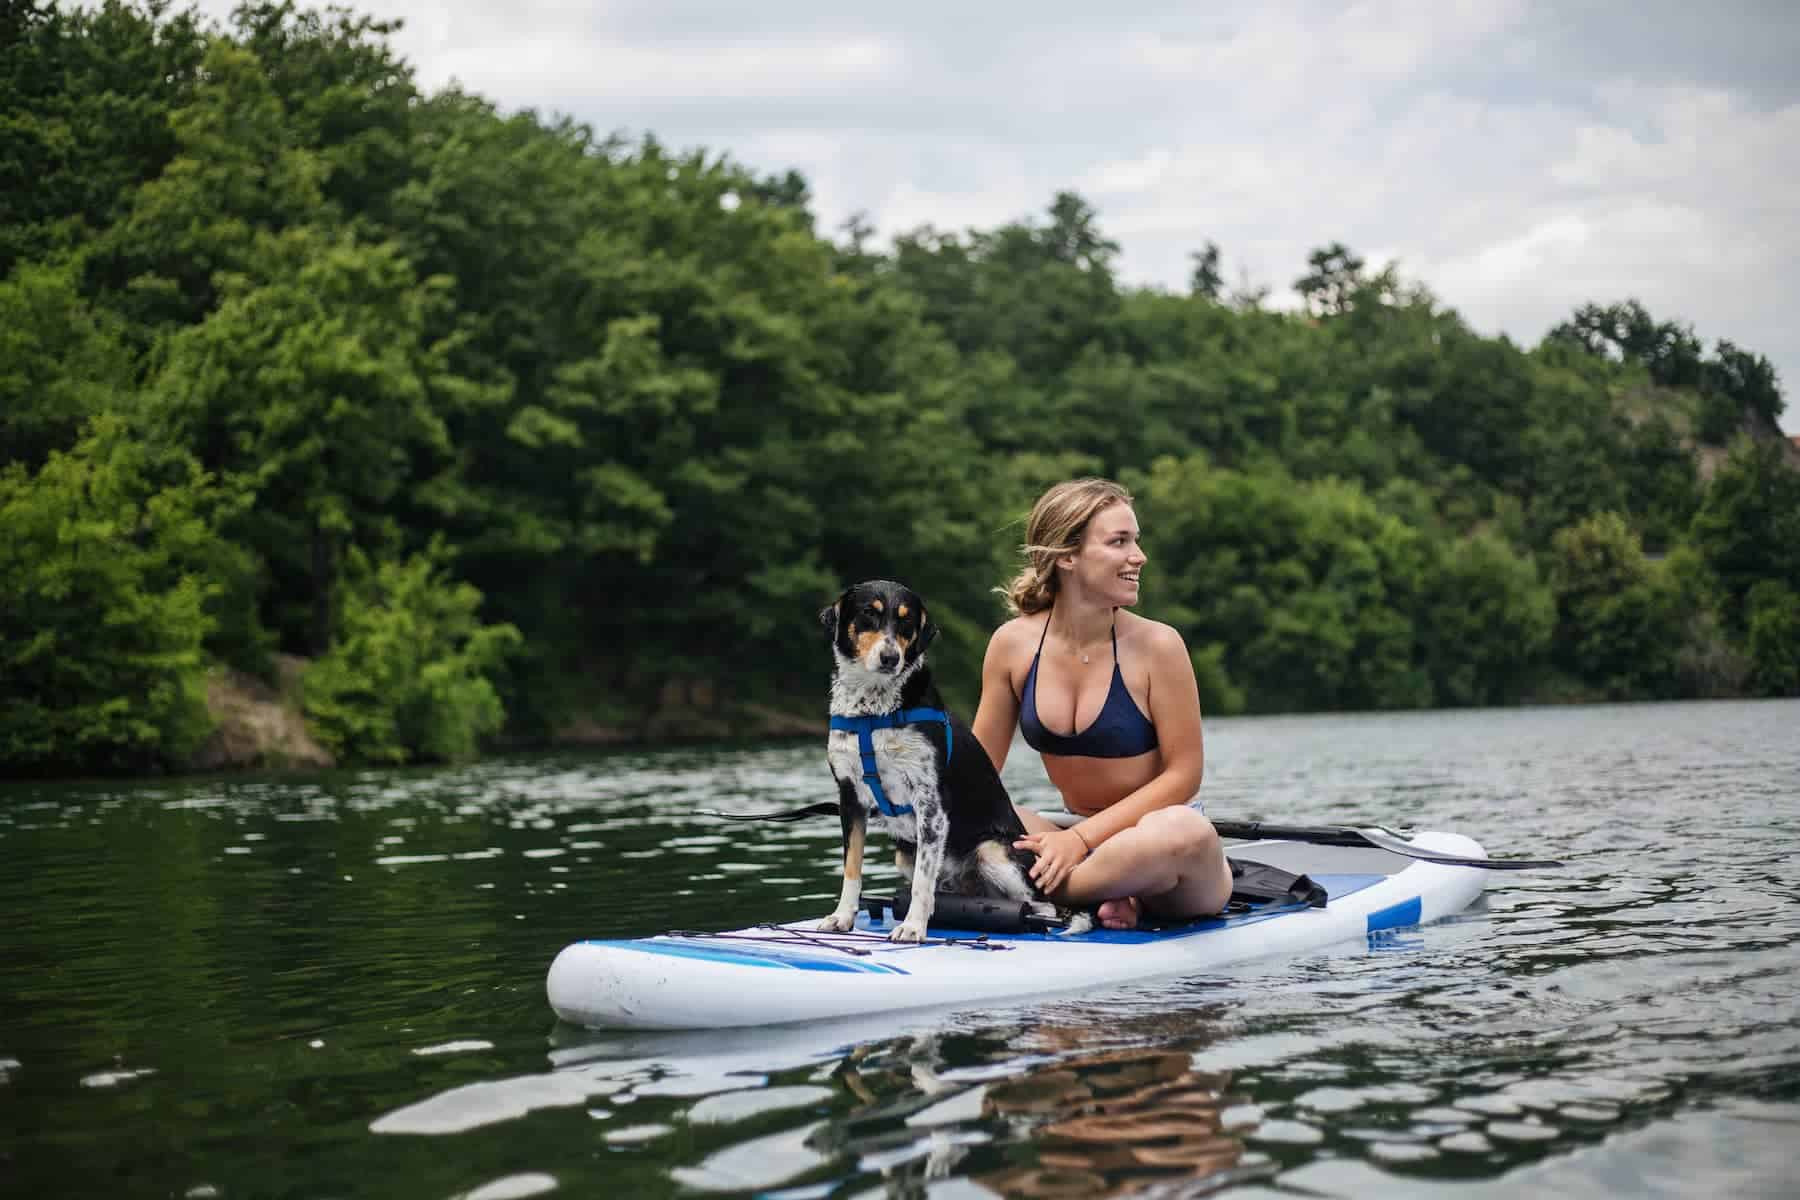 Slider_Woman and dog on paddle board_1800x1200C